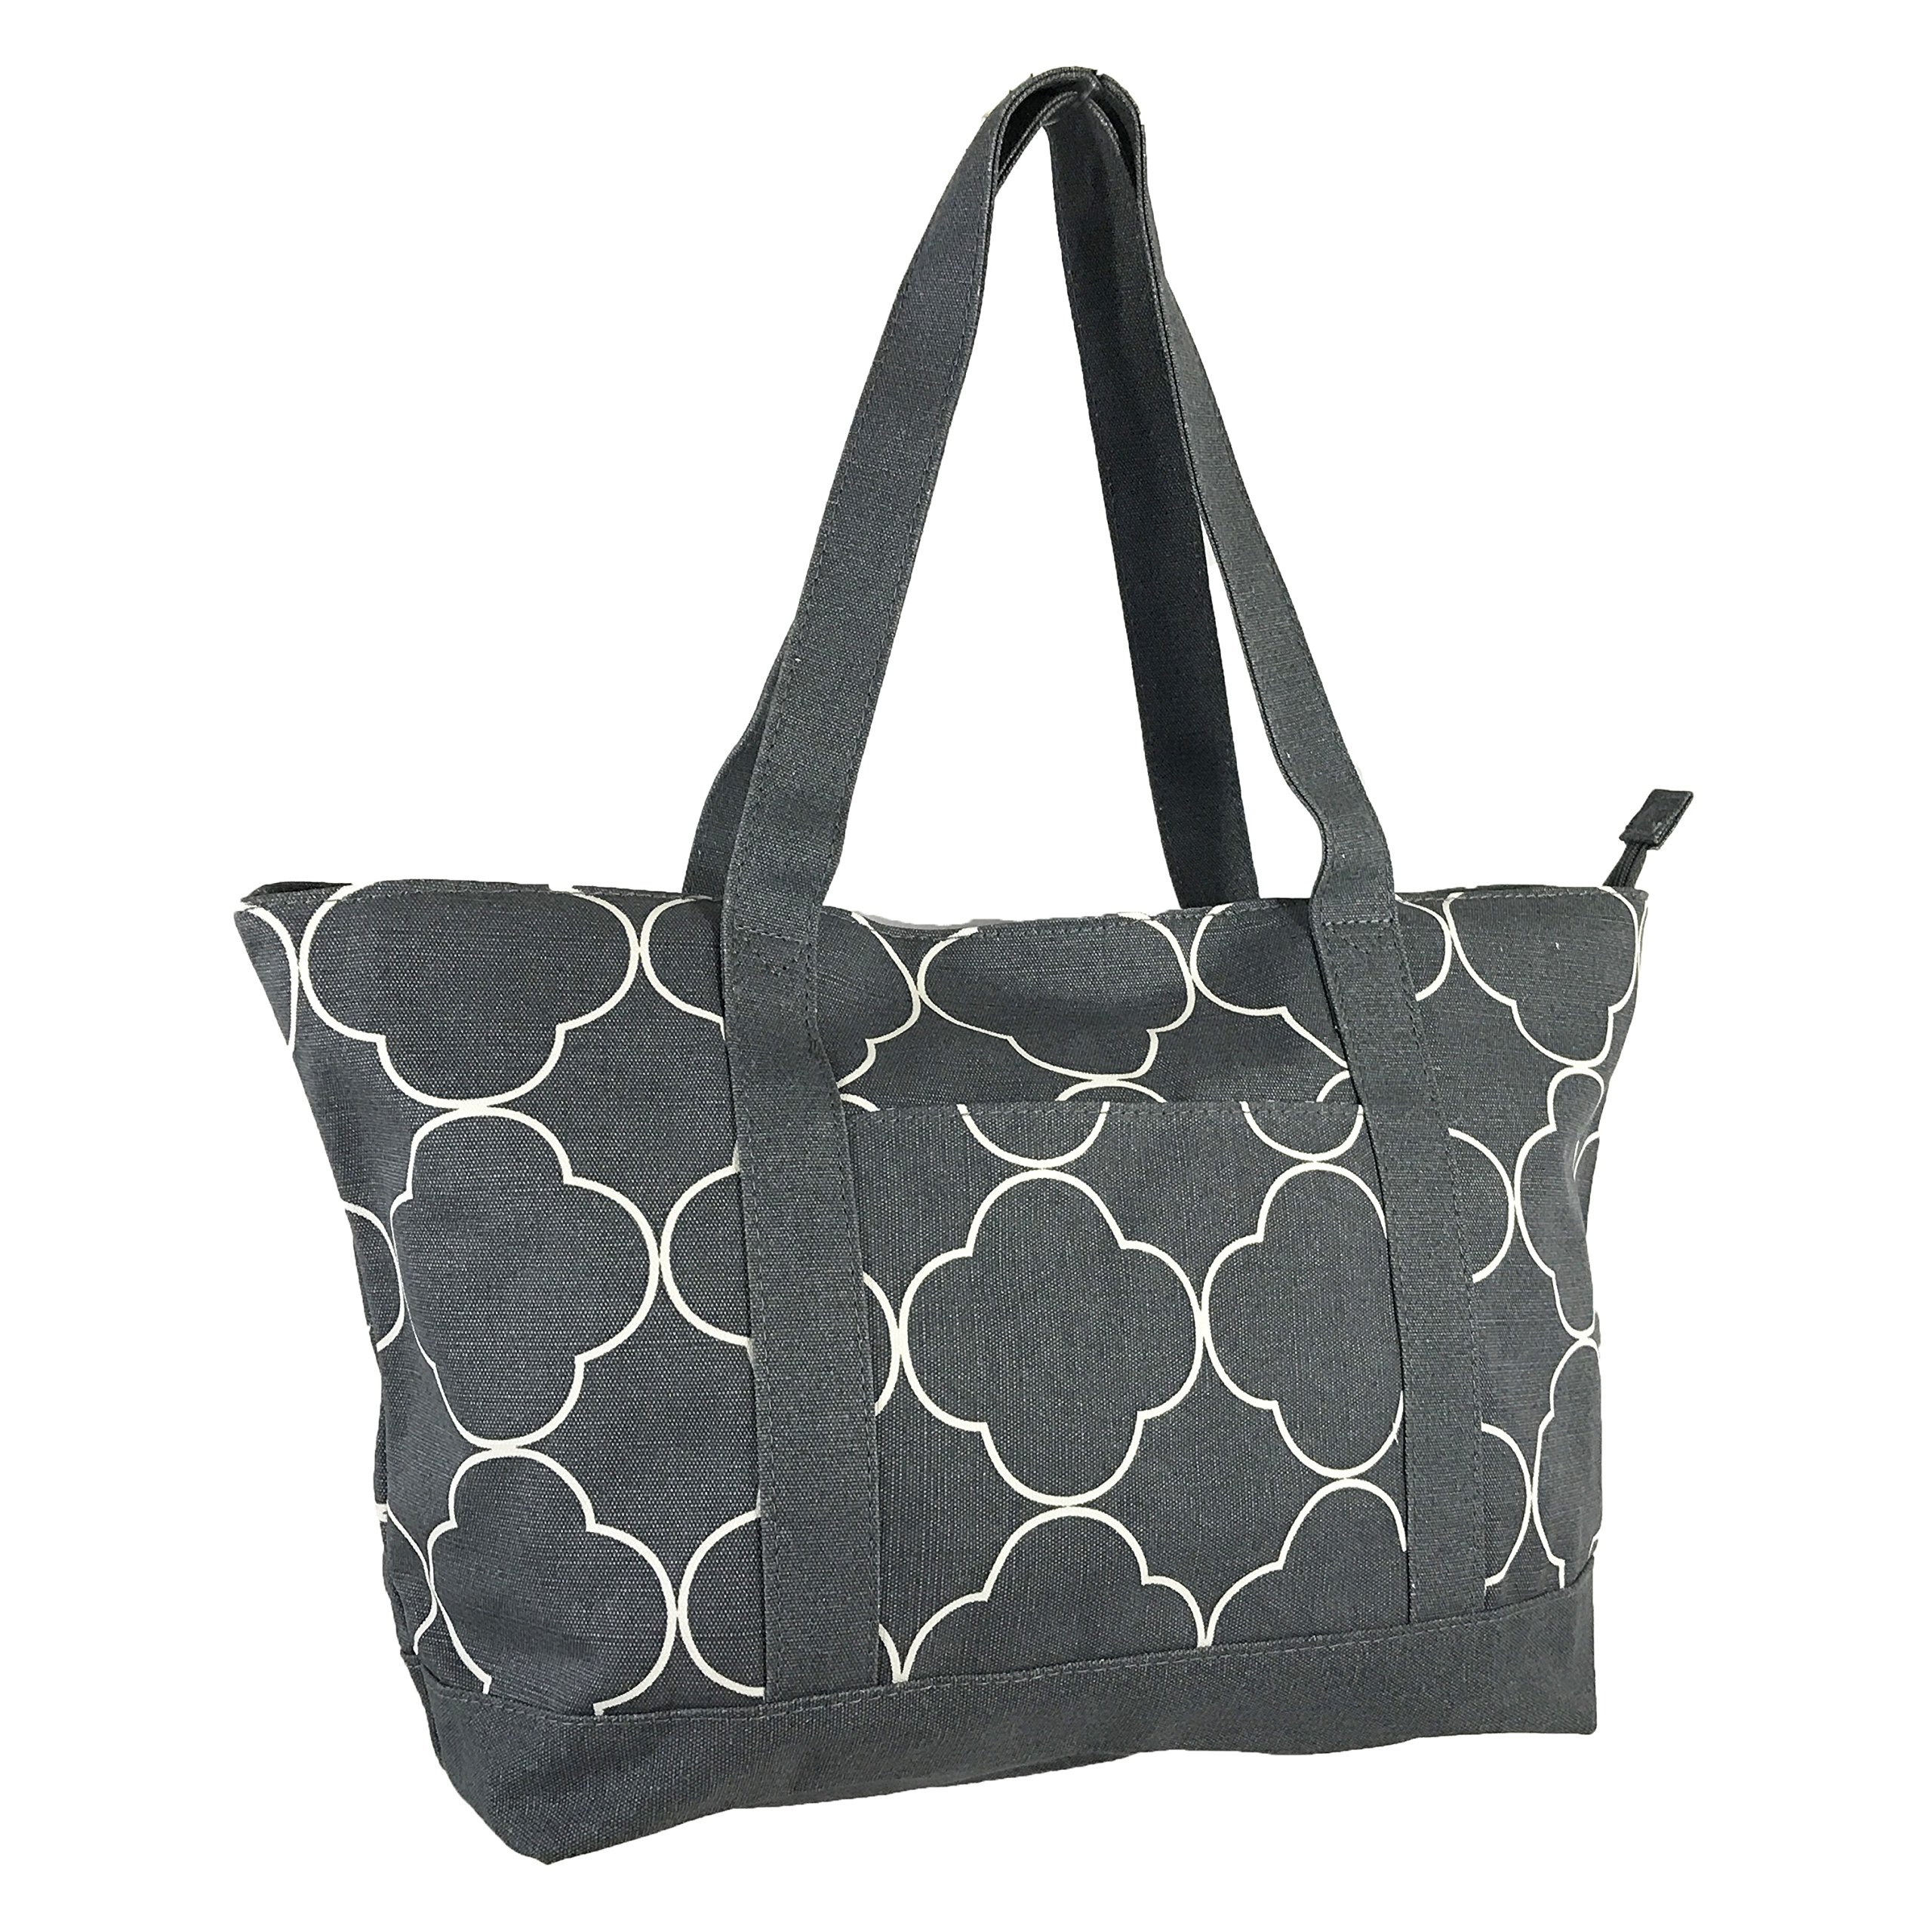 Allgala Extra Large Roomy Premium Canvas Tote Bag With Fashion Prints, Quartrefoil Grey